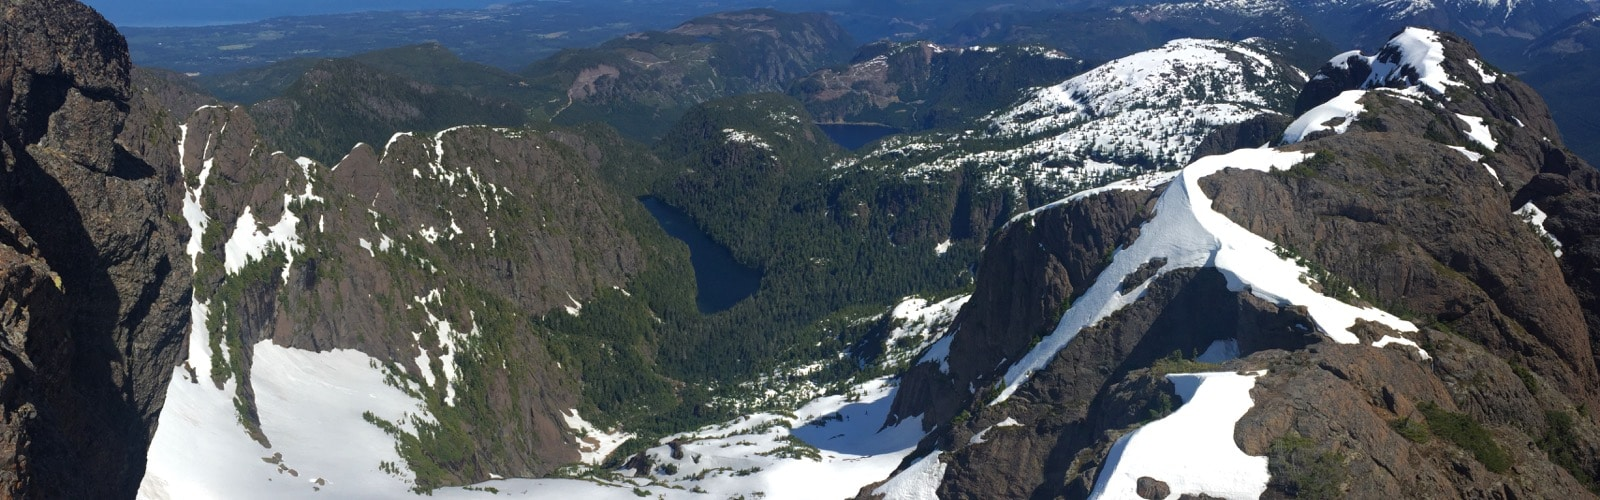 Climb Mount Arrowsmith UnJudges Route